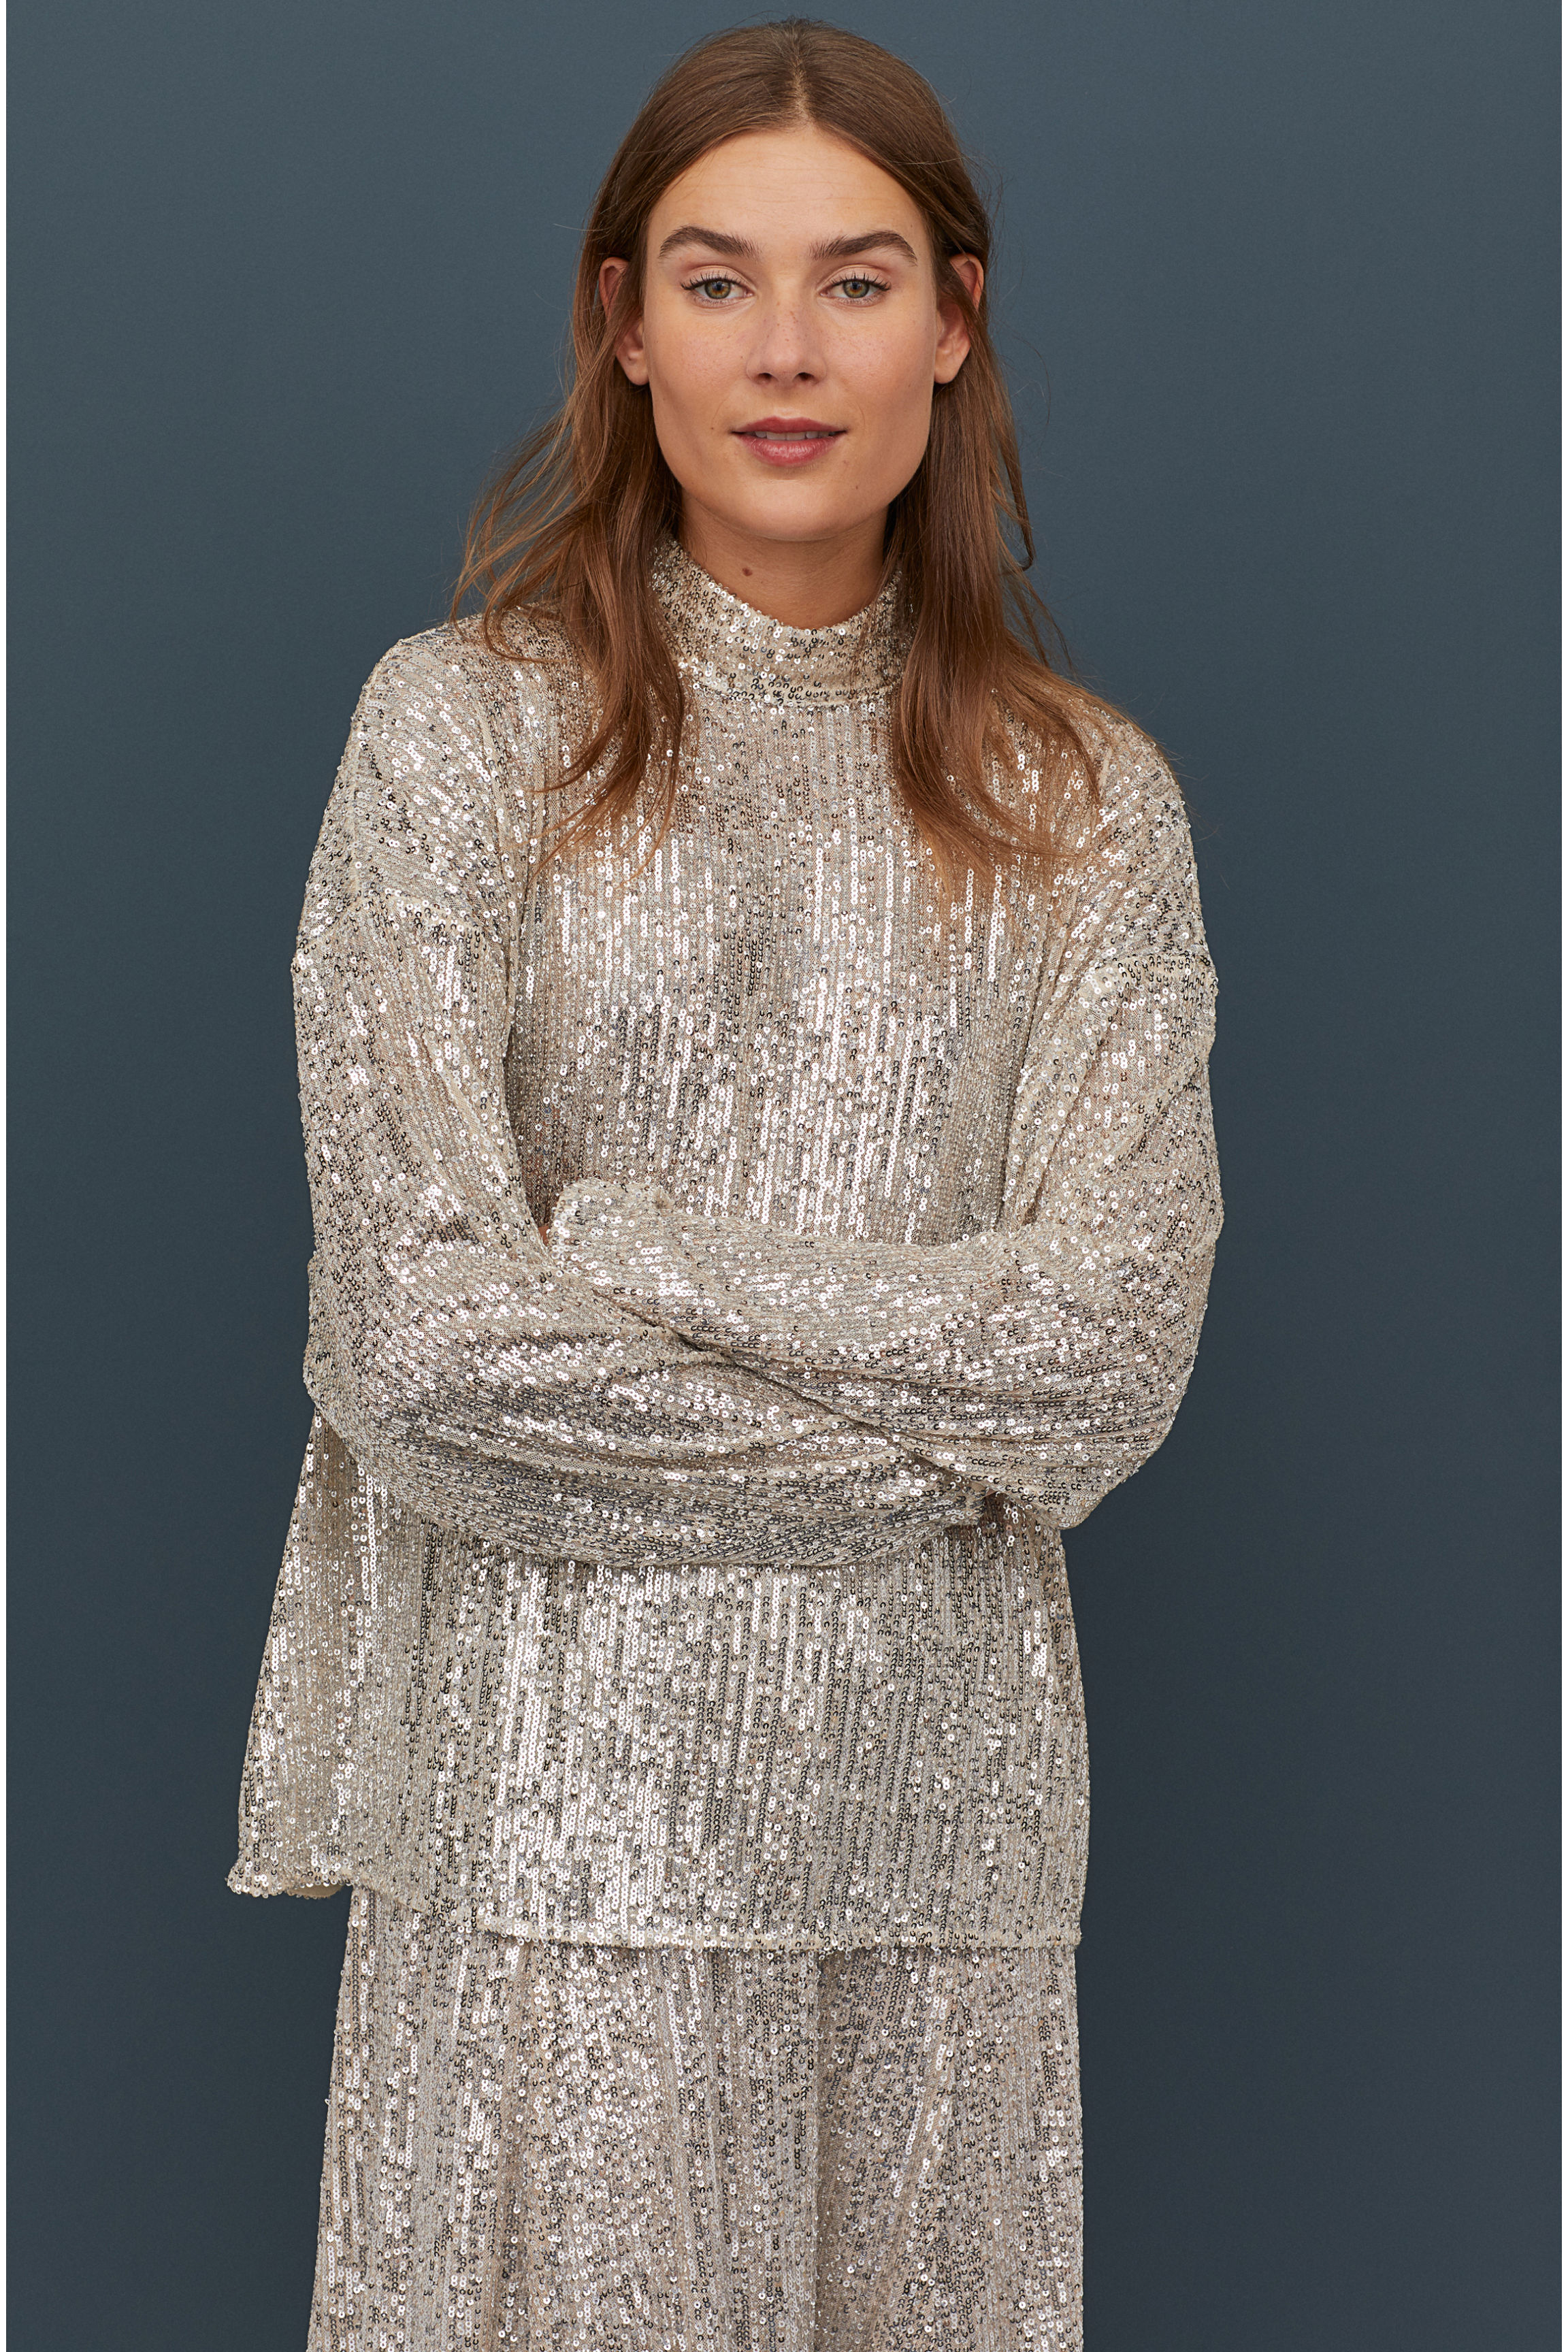 Sequined Top with High Collar - Light beige - Ladies | H&M US